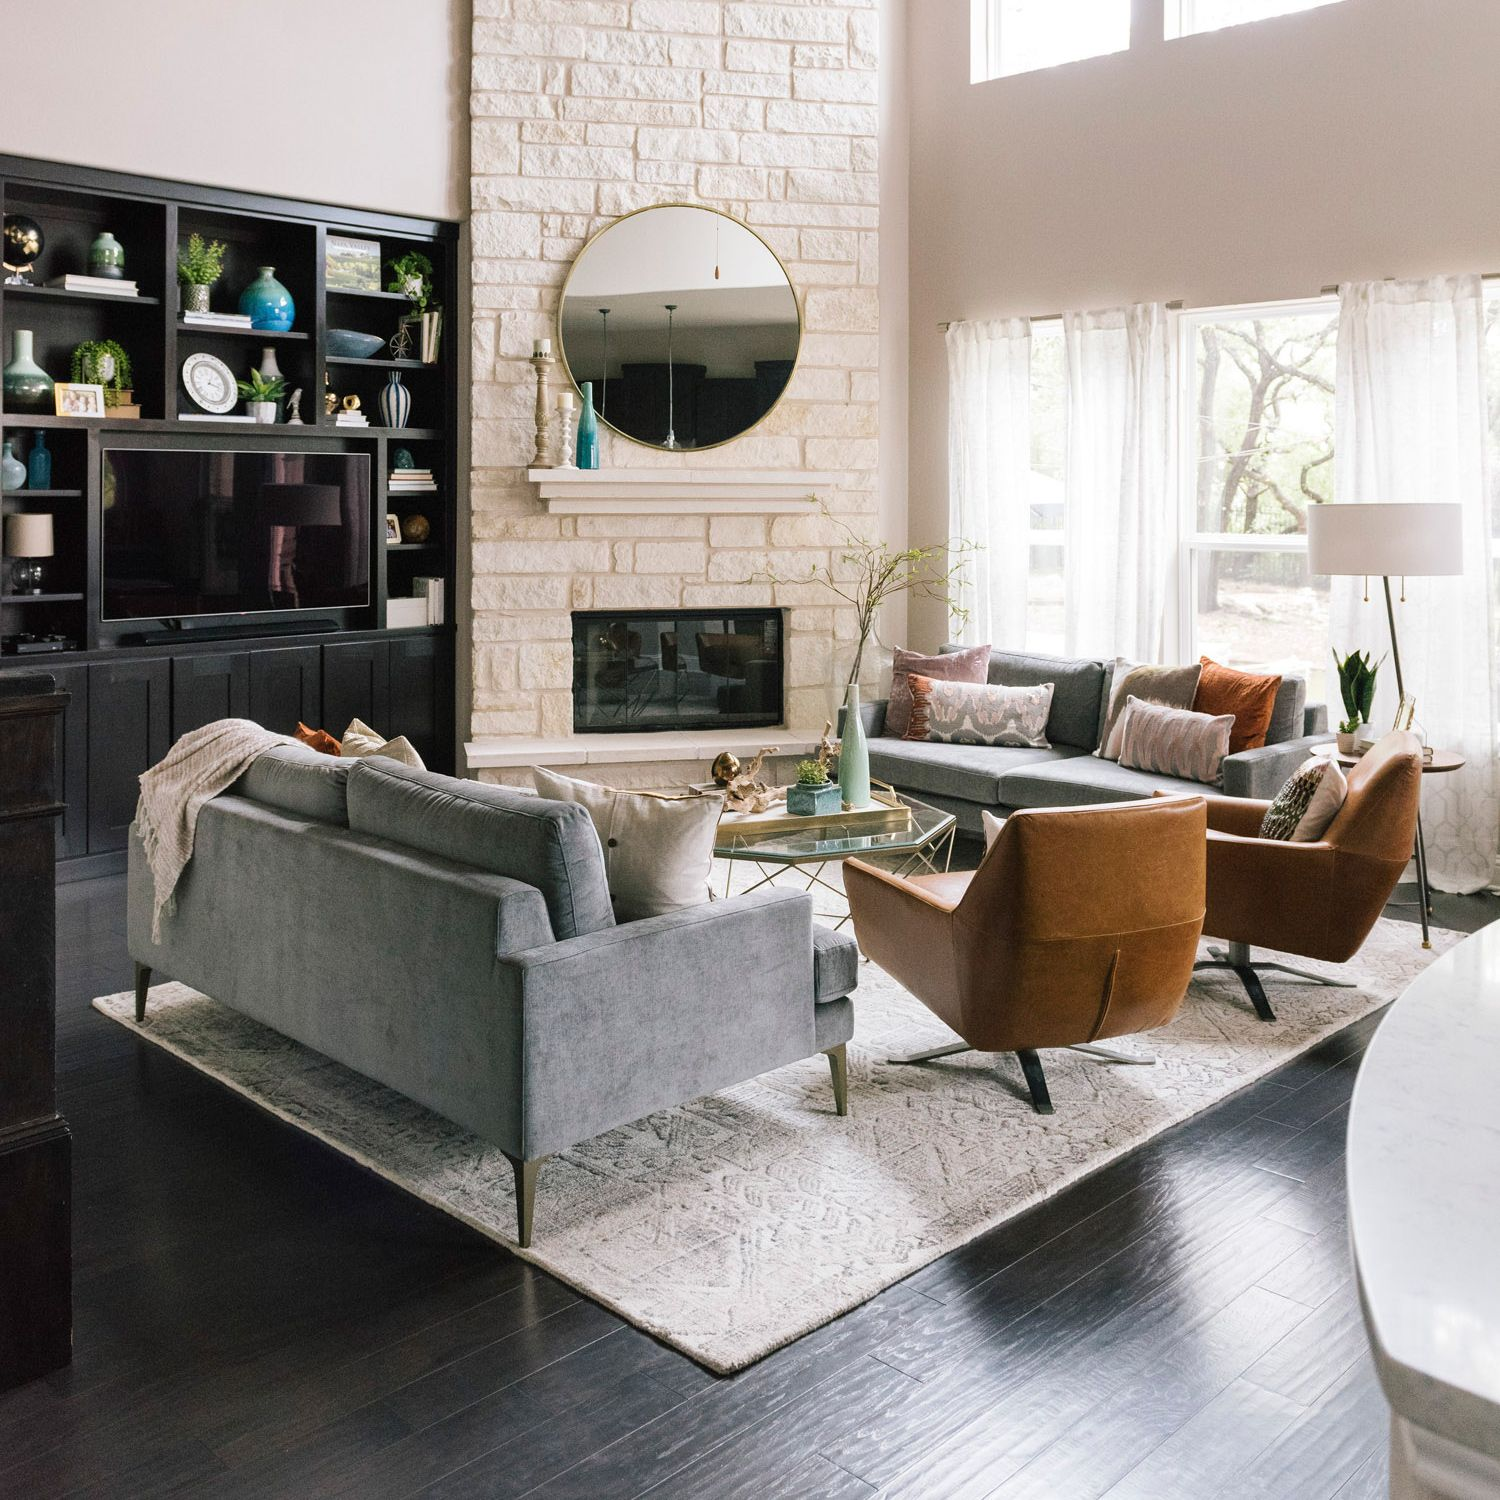 How To Make Two Sofas Work In Your Living Room Front Main Living Room Seating Living Room Leather Livingroom Layout